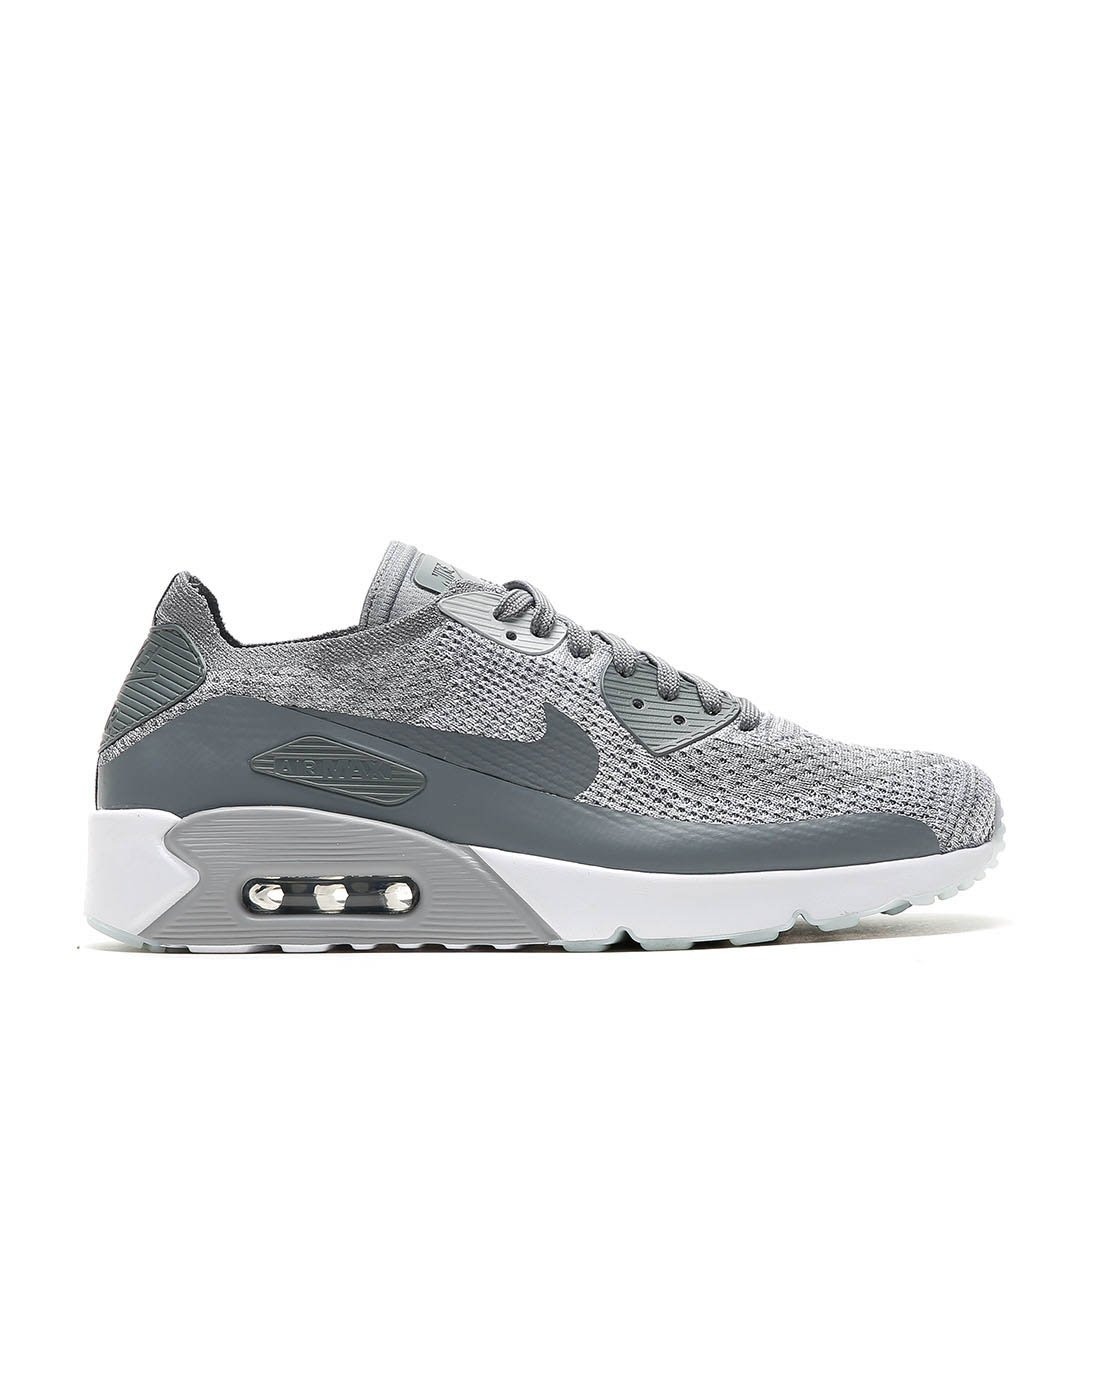 online store 23b64 46e6c Galleon - Nike Men s Air Max 90 Ultra 2.0 Flyknit, Pure Platinum Cool  Grey-White, 12 M US